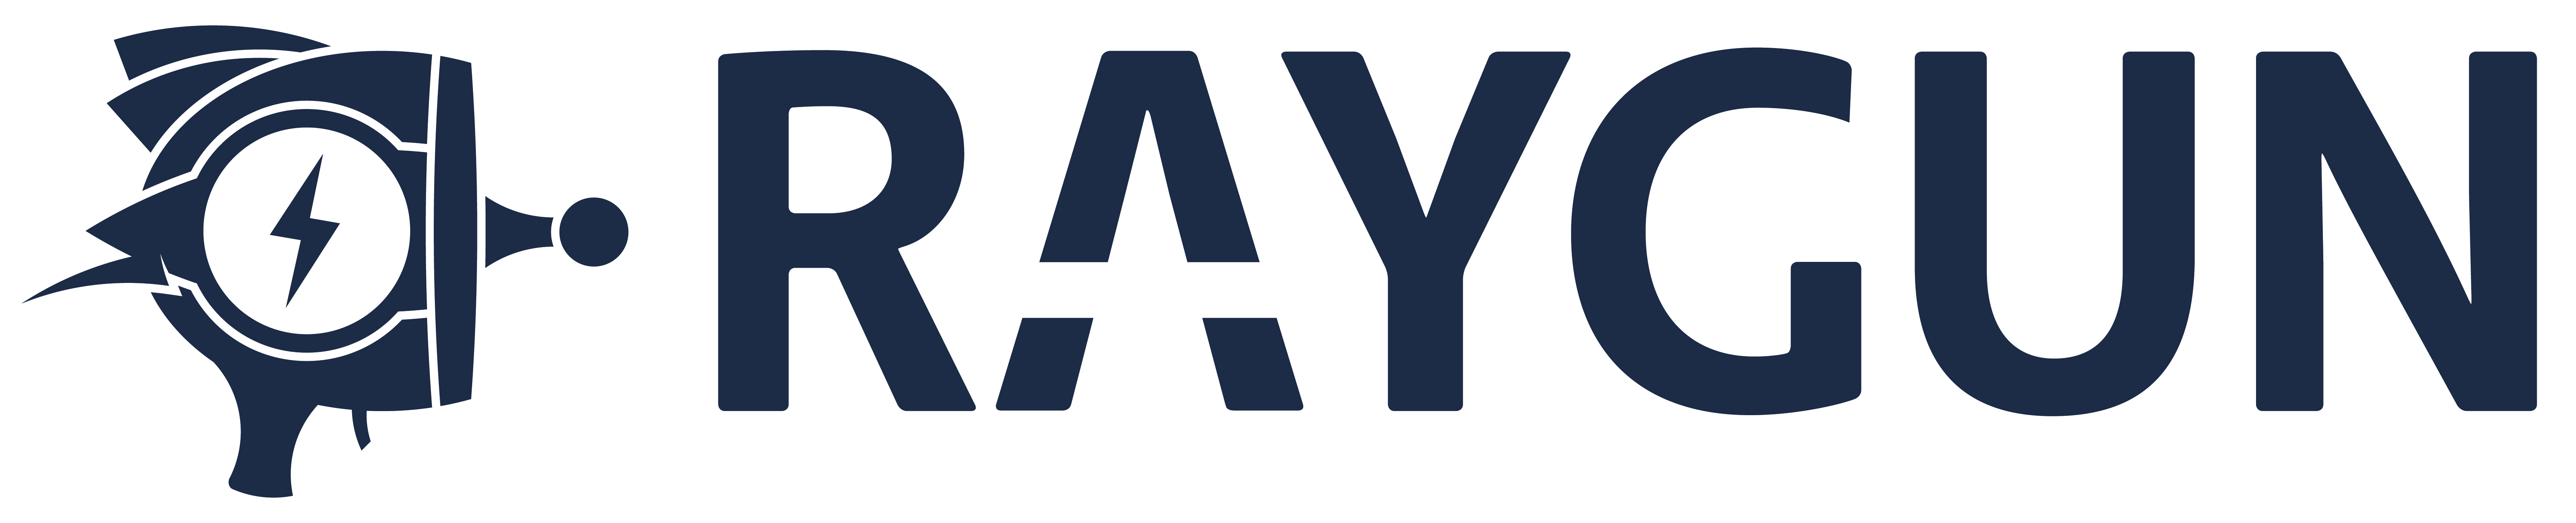 Raygun logo for Pivotal Tracker integration